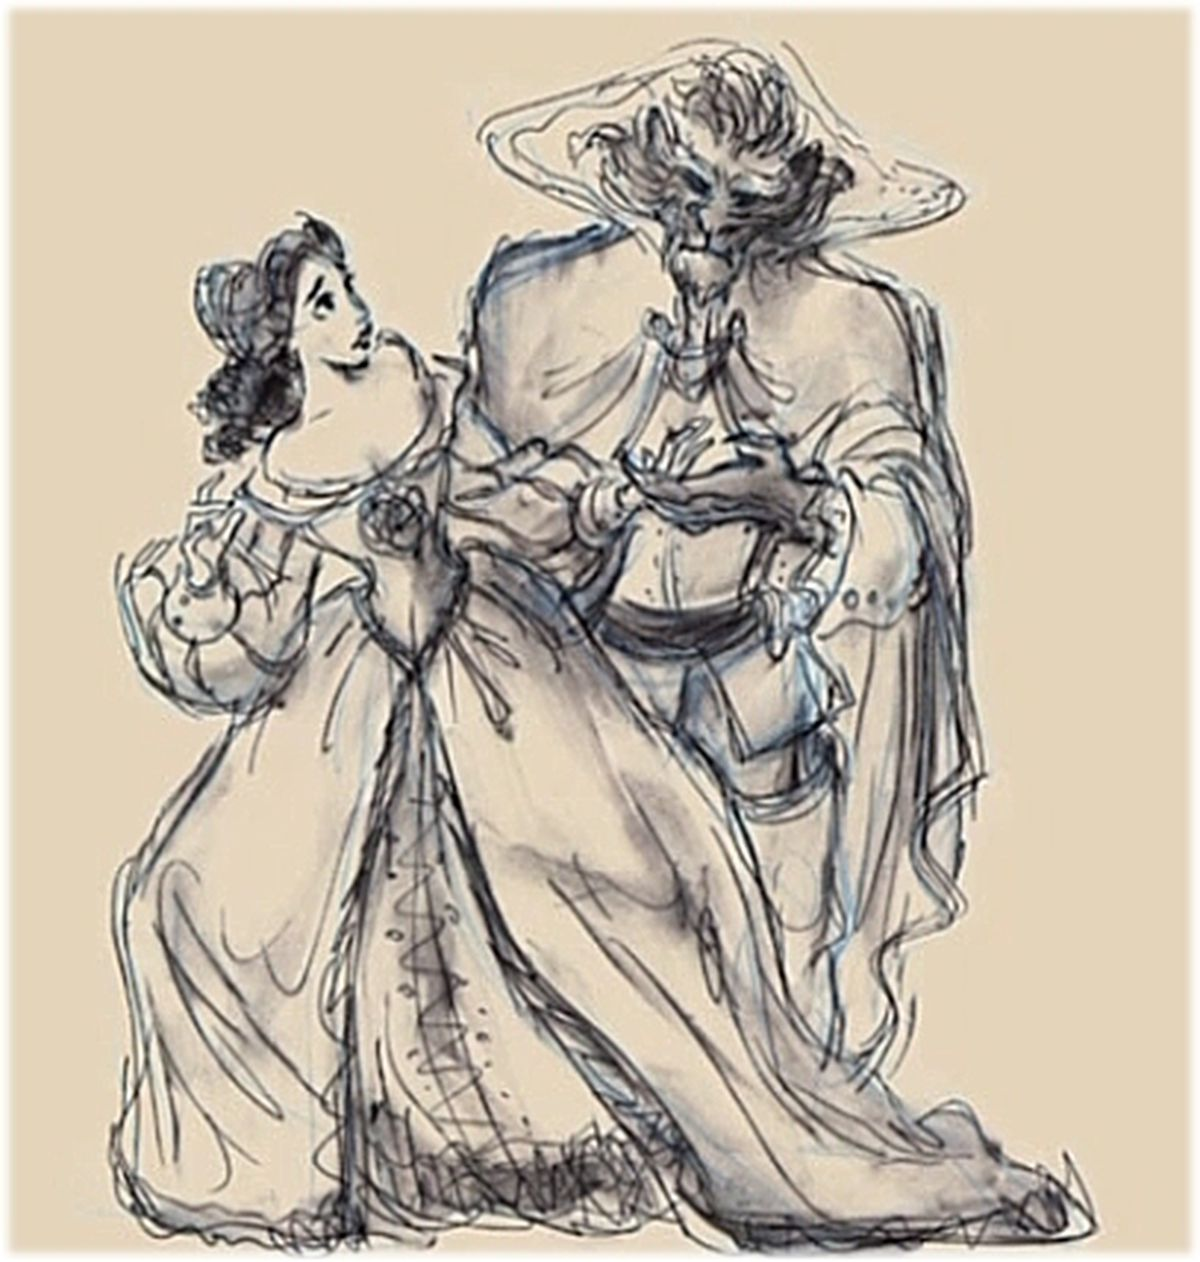 Andreas Dejas Original Concept Art For Belle And The Beast Tale As Old Time Making Of Disney Beauty